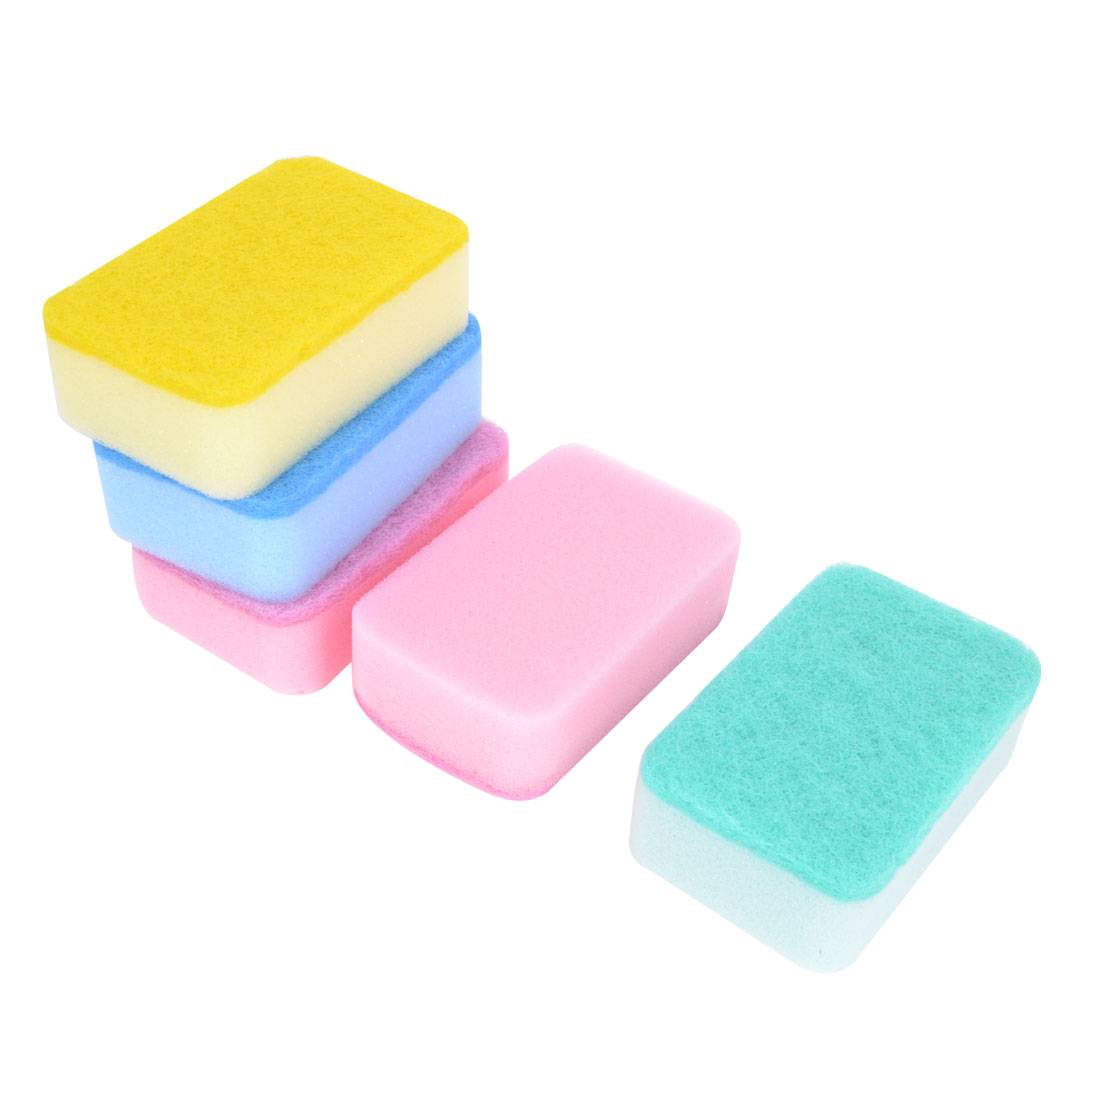 Kitchen Multicolor Dishwashing Dish Bowl Scrub Sponge Pads 5 PCS